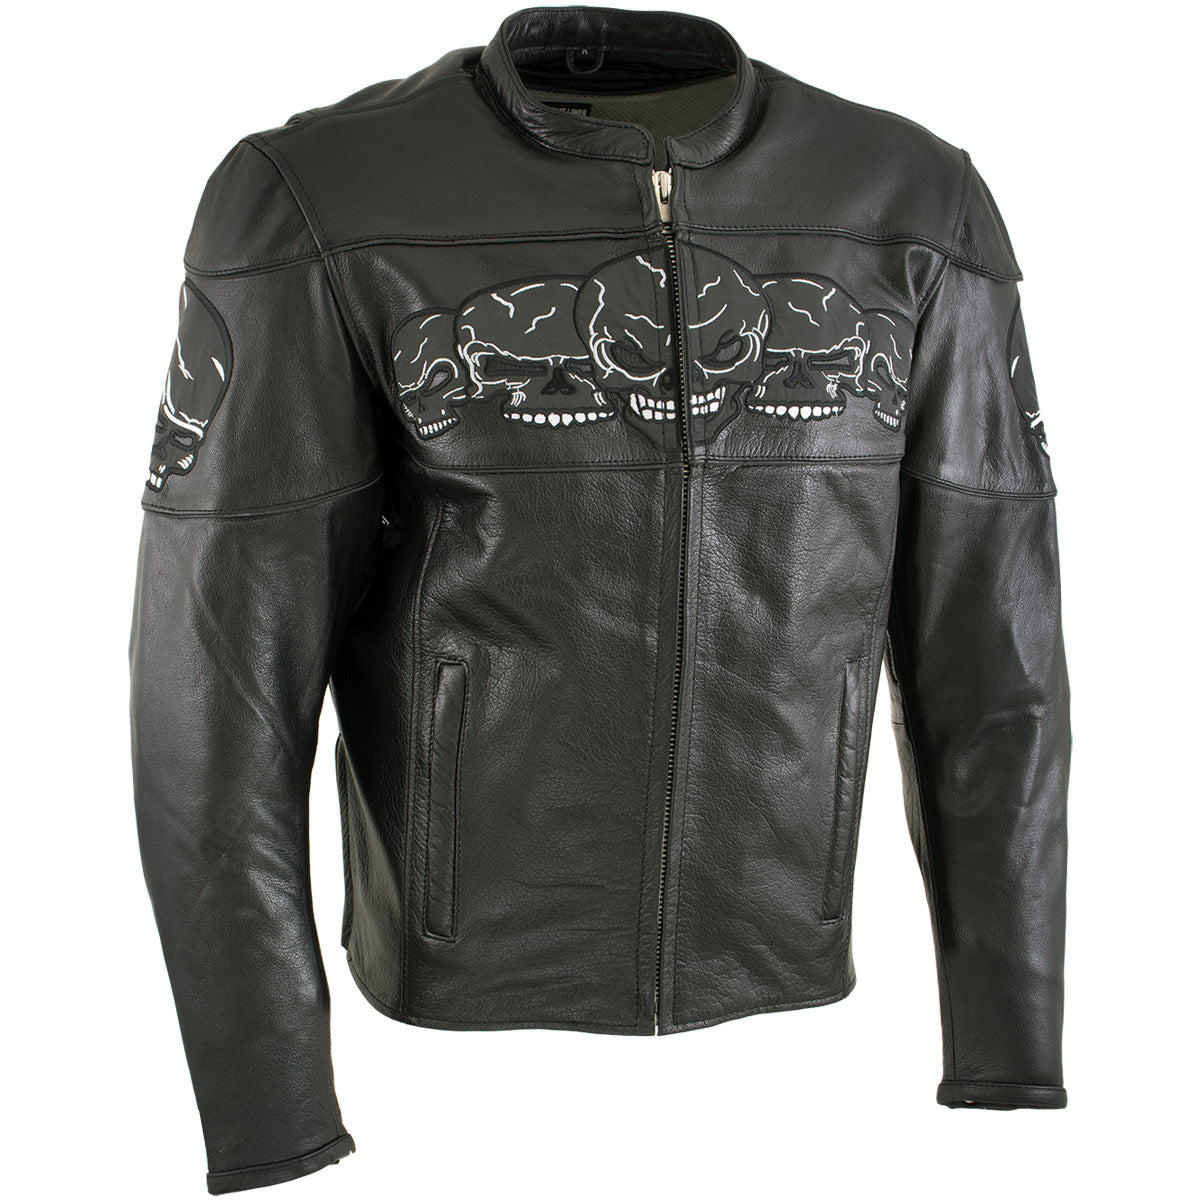 Xelement '3 Skull Head' BXU6050 Men's Black Leather Motorcycle Jacket